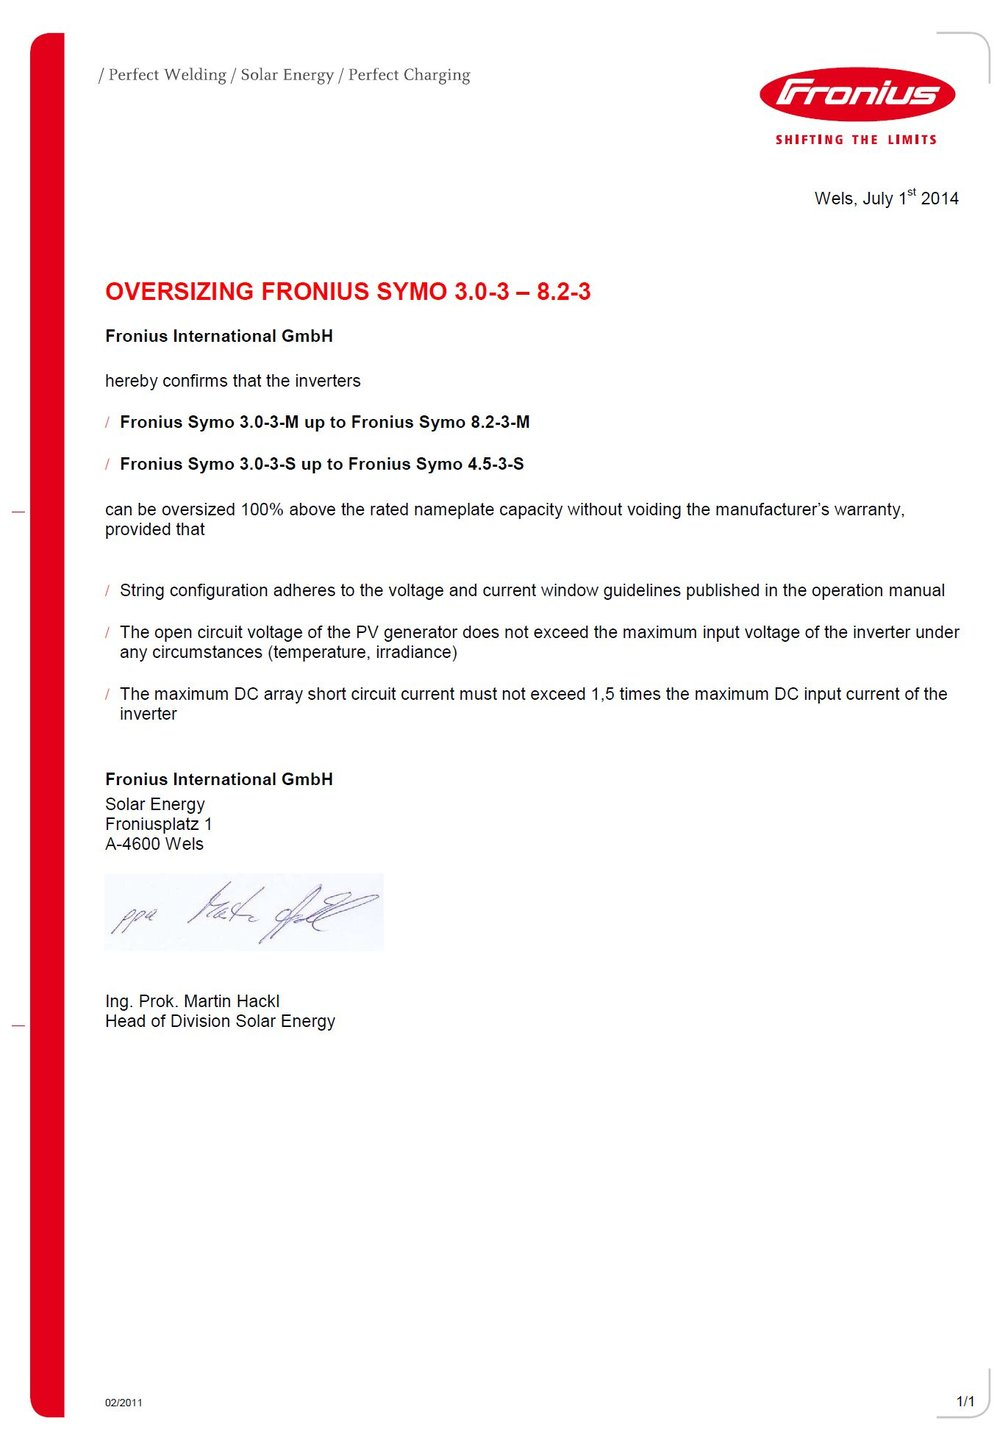 Fronius Symo Oversizing  - Document from Fronius stating they permit  100%   more  (200% total) DC capacity per AC output.